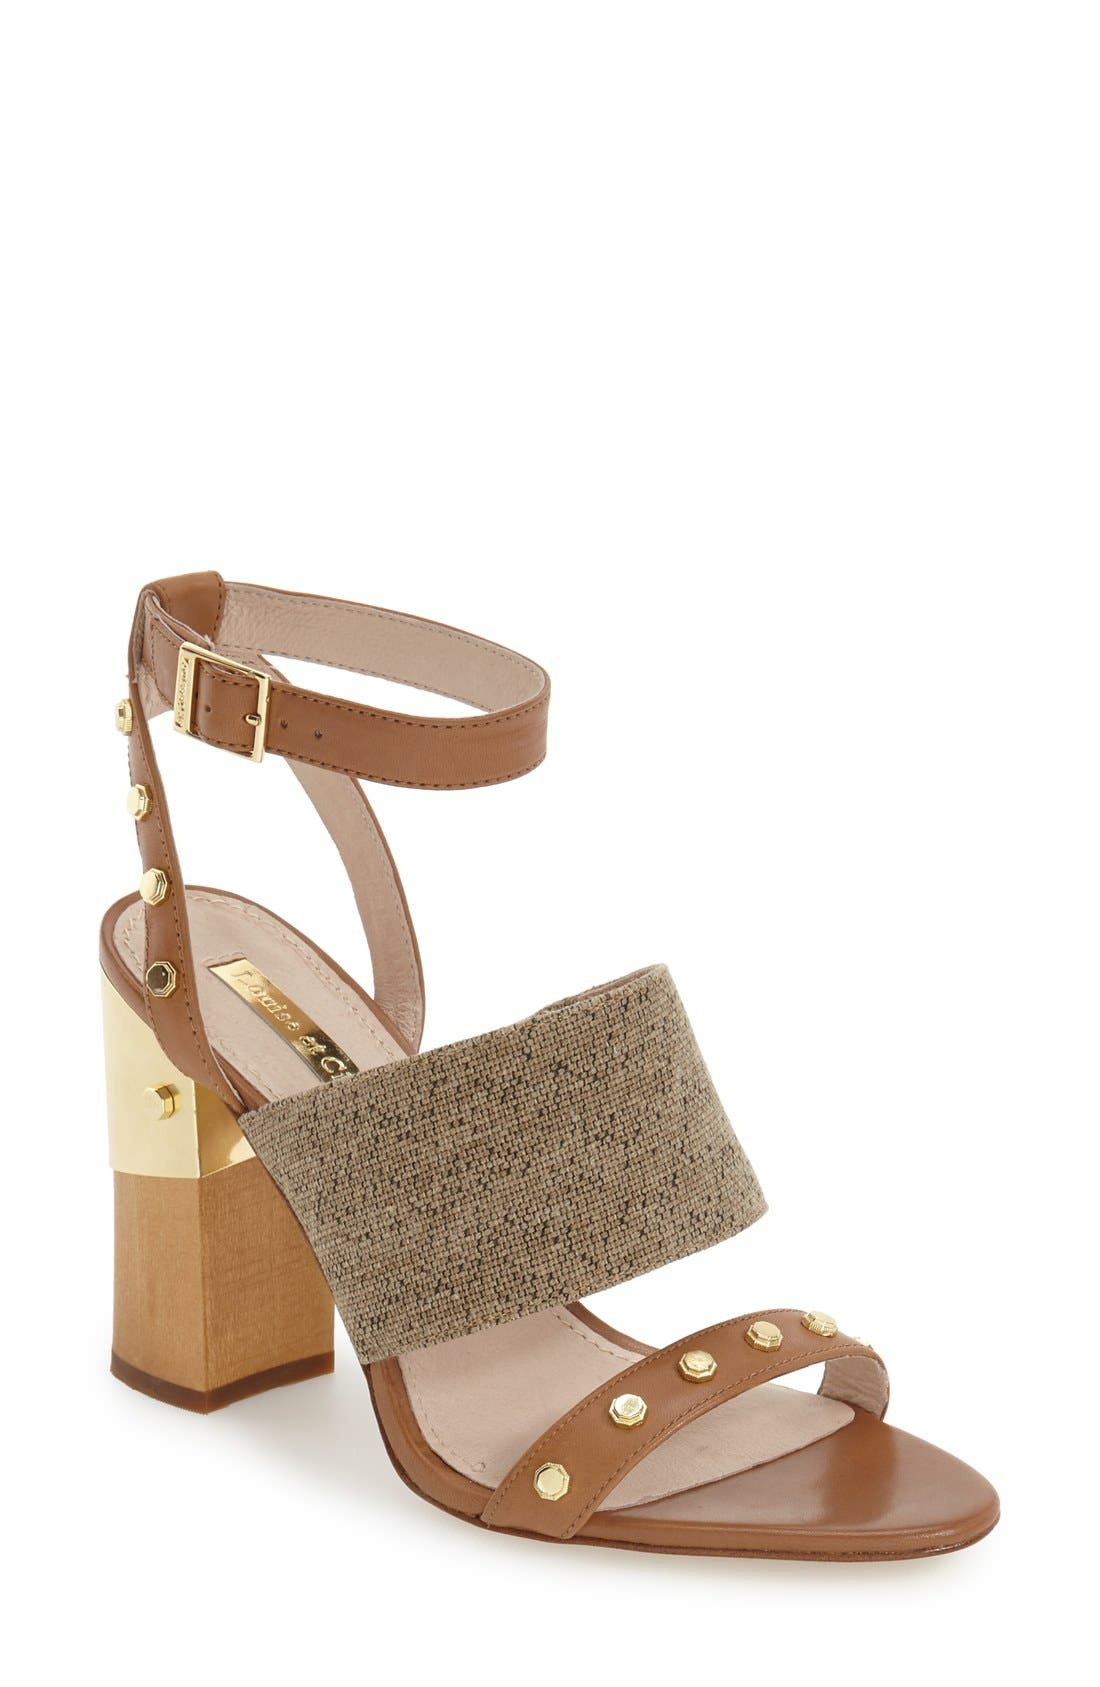 Alternate Image 1 Selected - Louise et Cie 'Kellyn' Studded Sandal (Women)